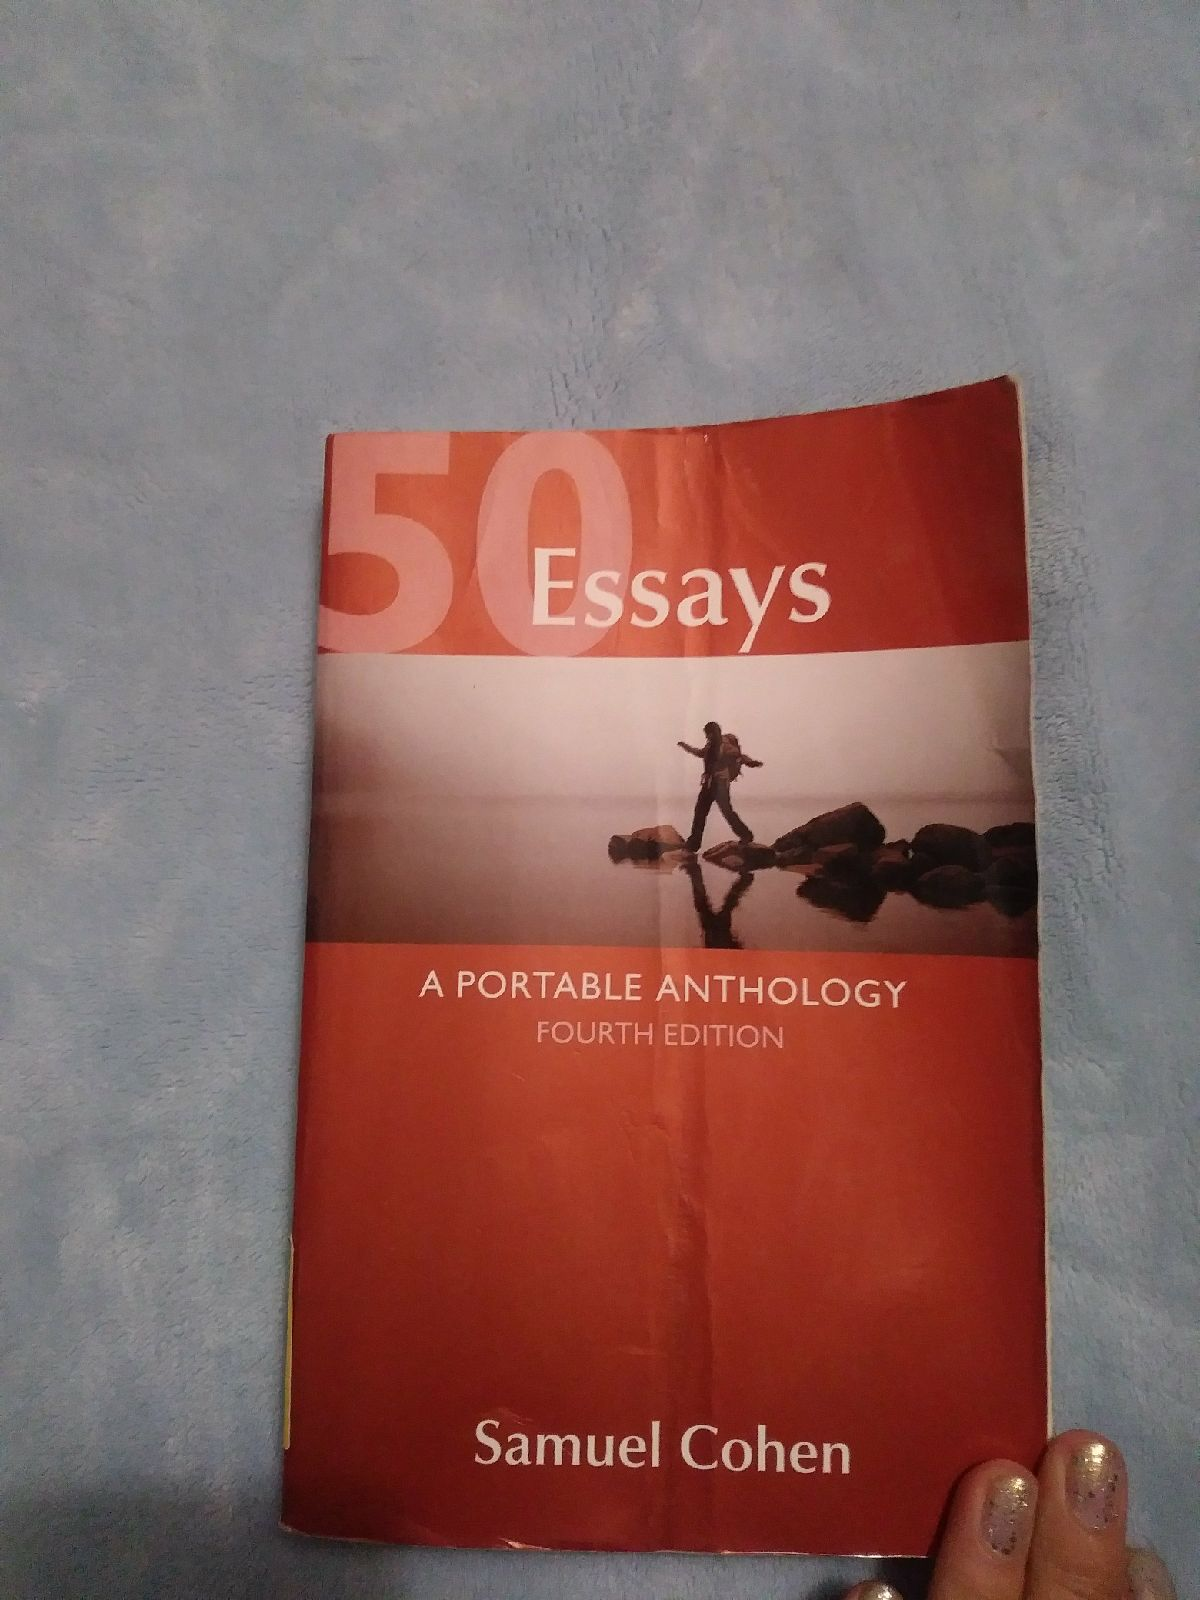 50 model essays a portable anthology